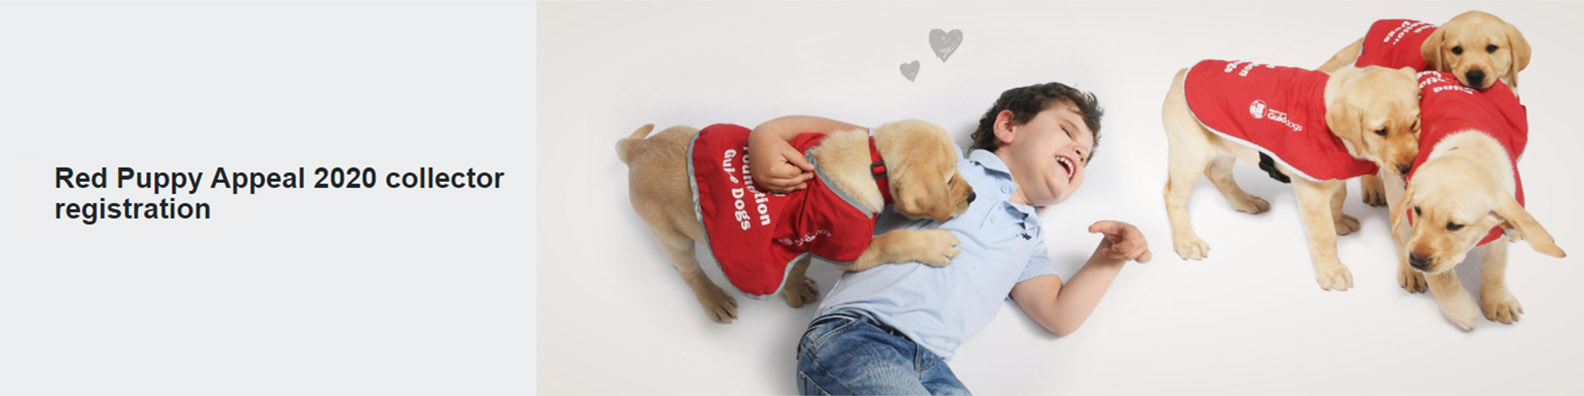 Young Renzo lying on the floor playing with four guide dog puppies in red coats